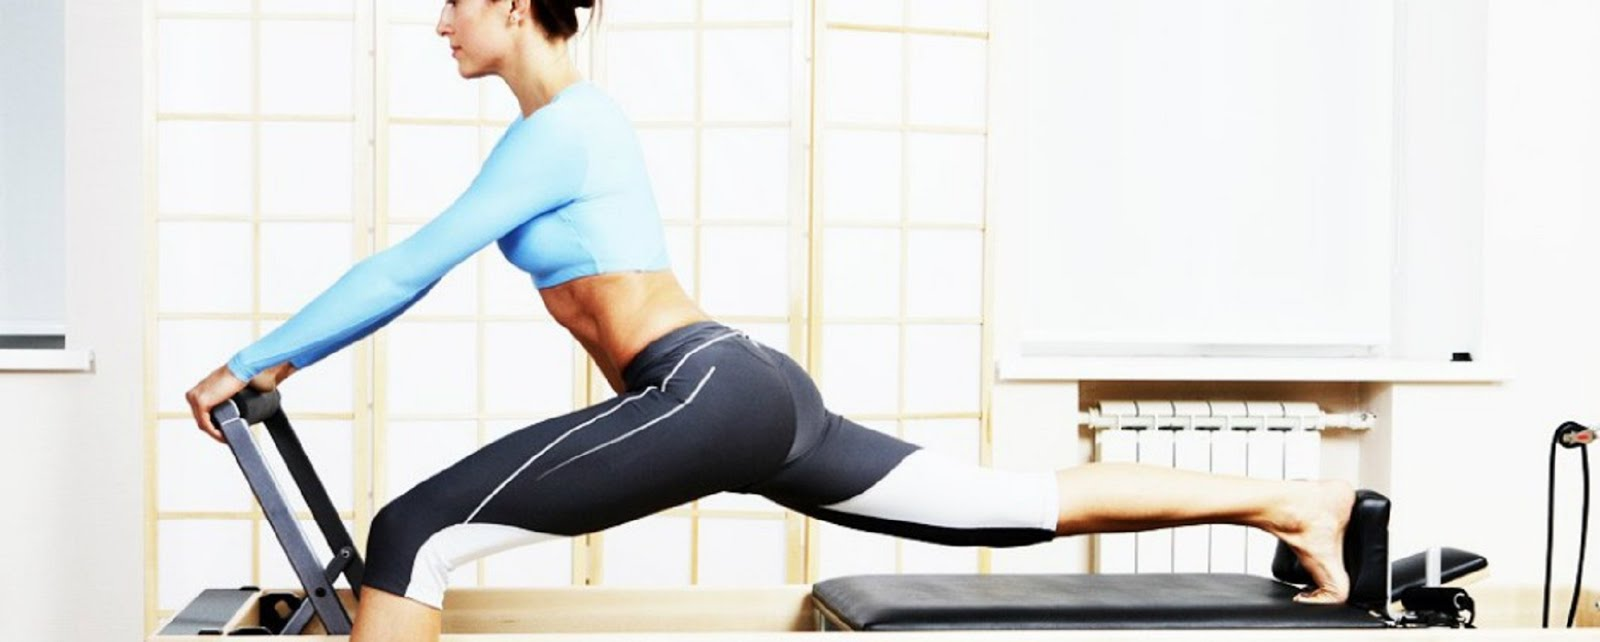 Treating Lower Back Pain with effective Pilates